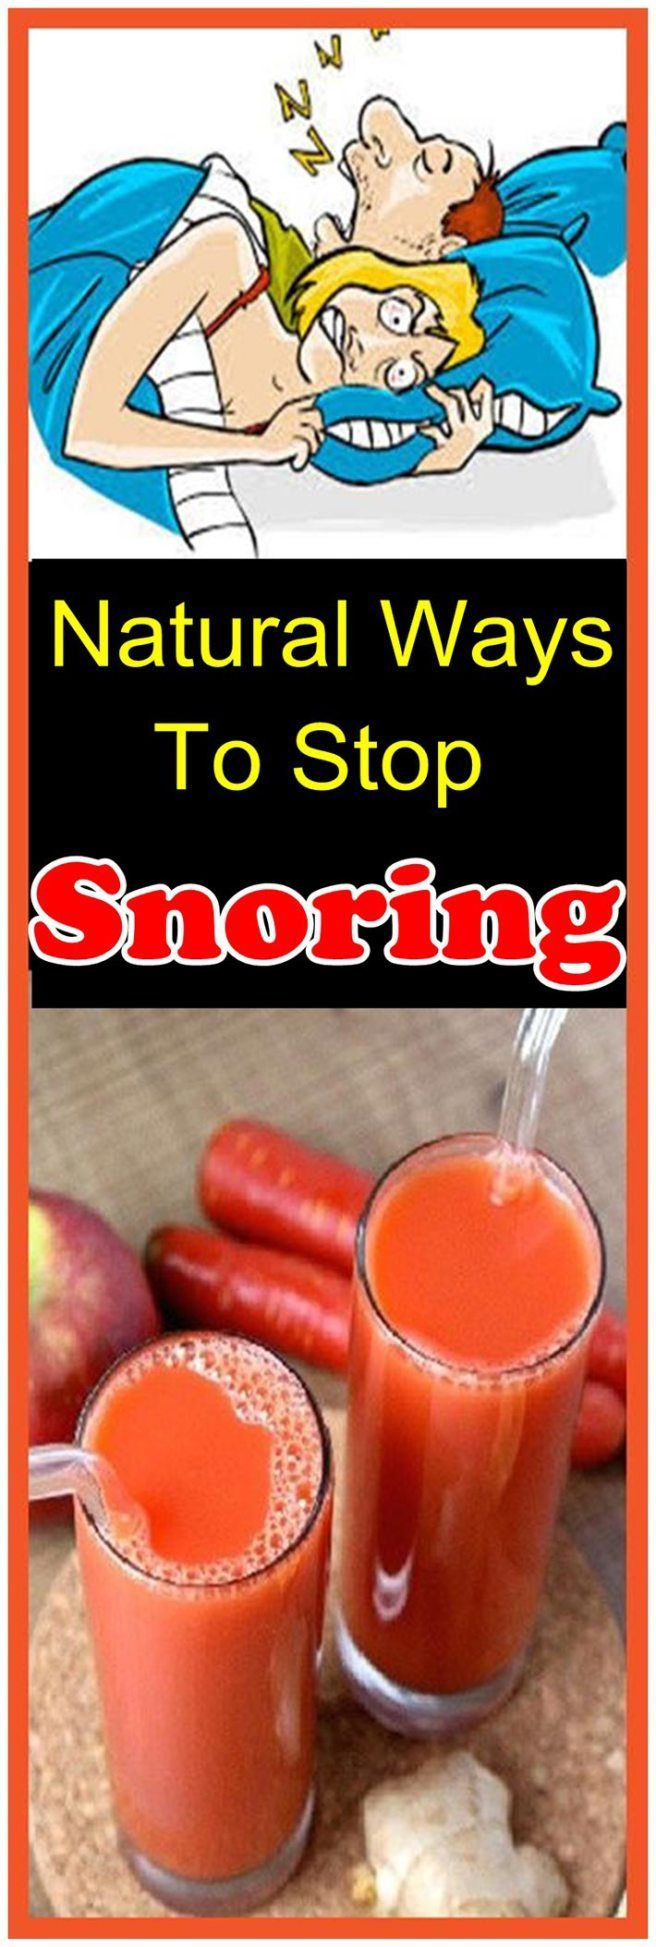 My Husband Stopped Snoring When A Friend Of Mine Gave Me ...